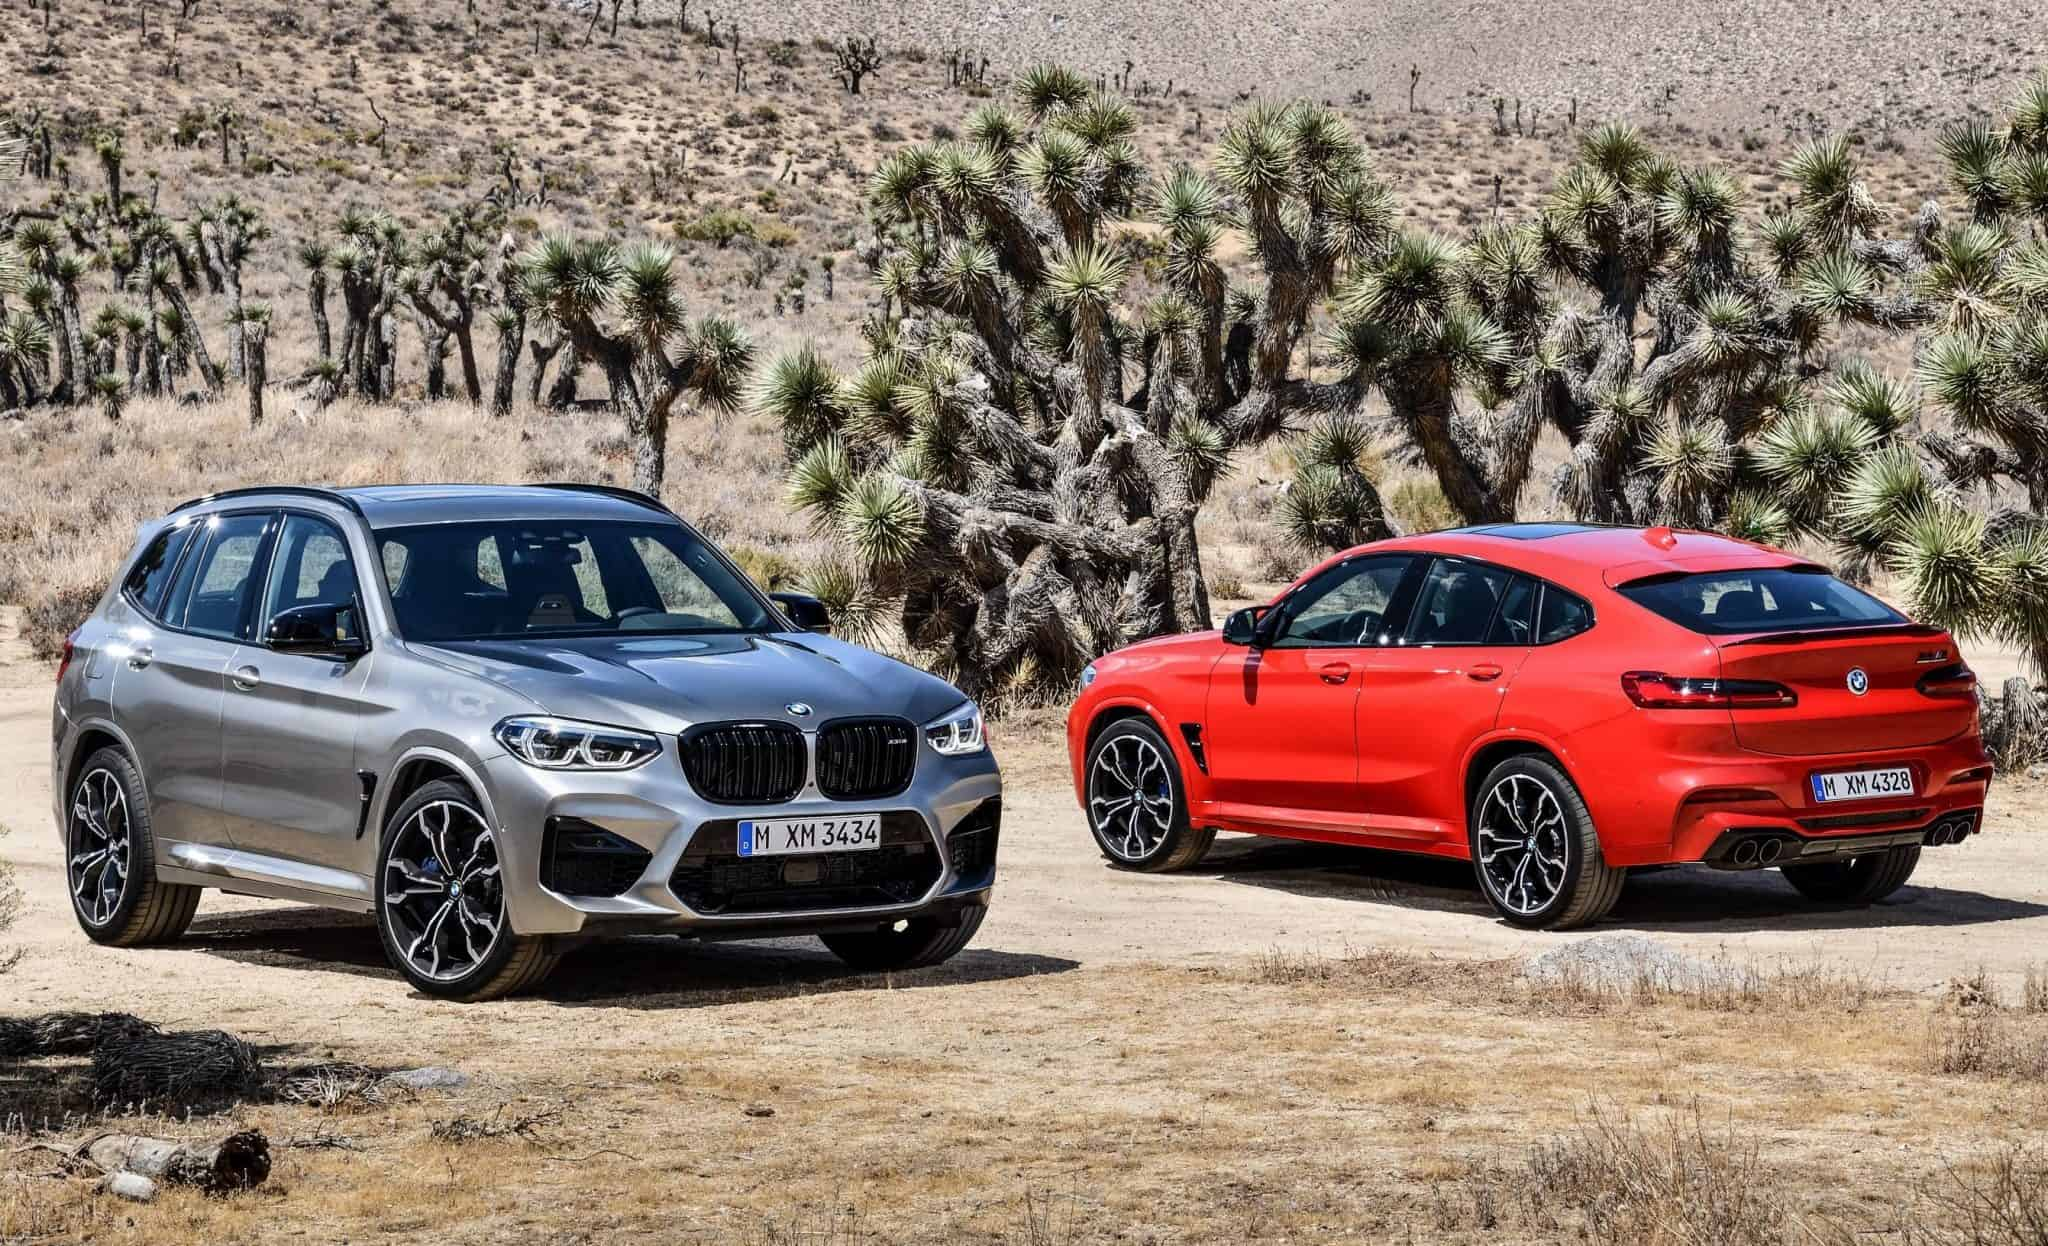 South Africa will only get the more powerful versions of BMW's new performance SUVs.